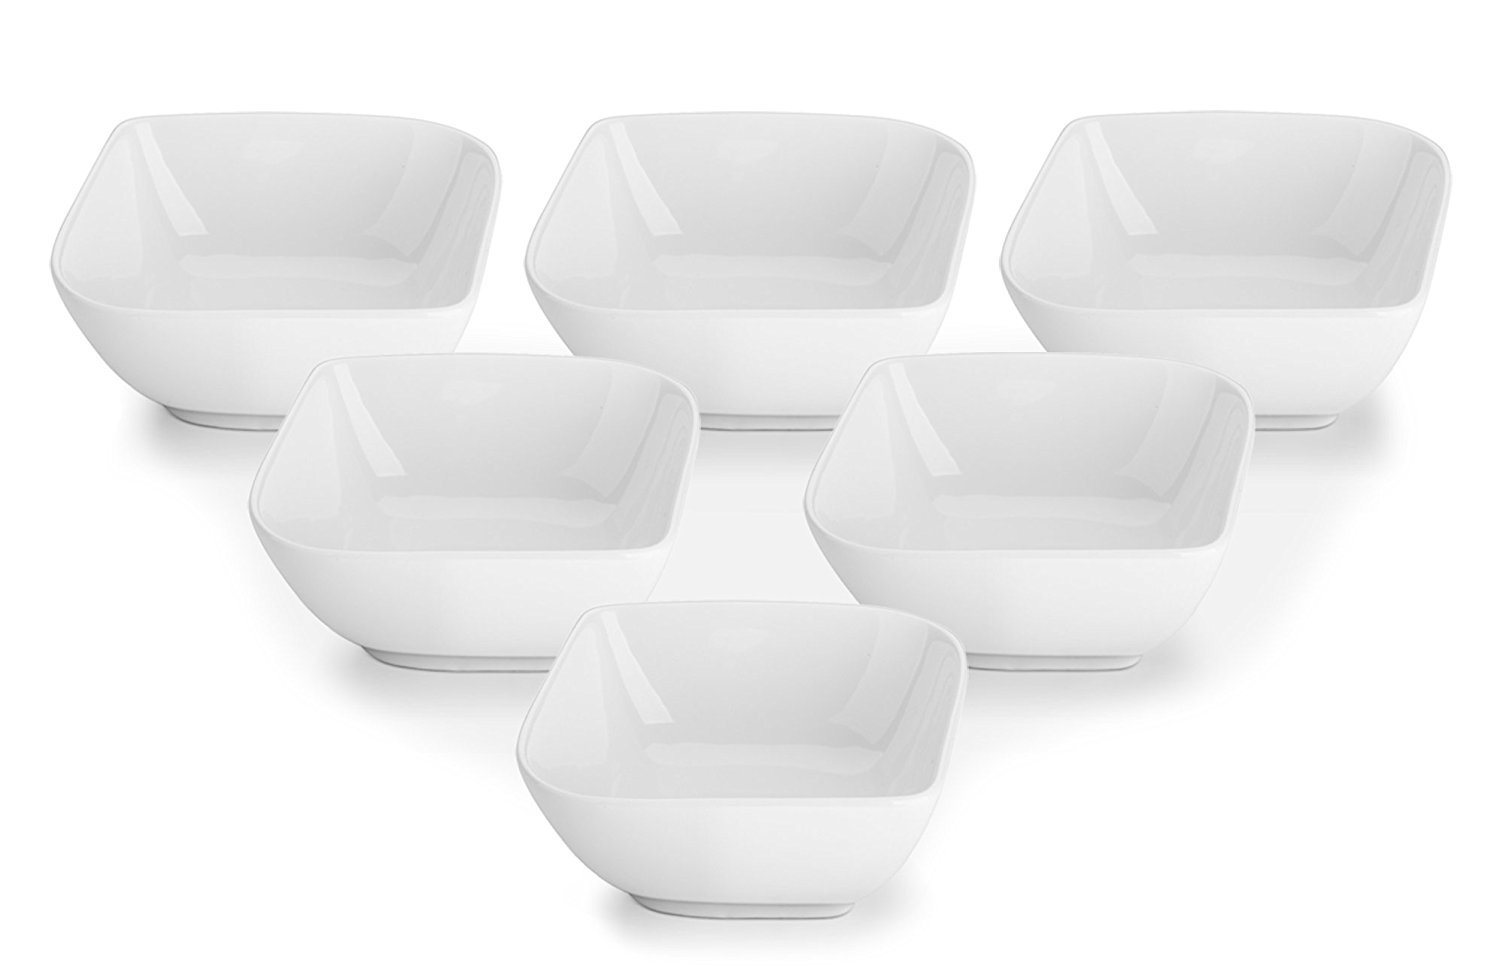 DOWAN Porcelain Ramekin- Set of 6, White, Stylish Square Sihai